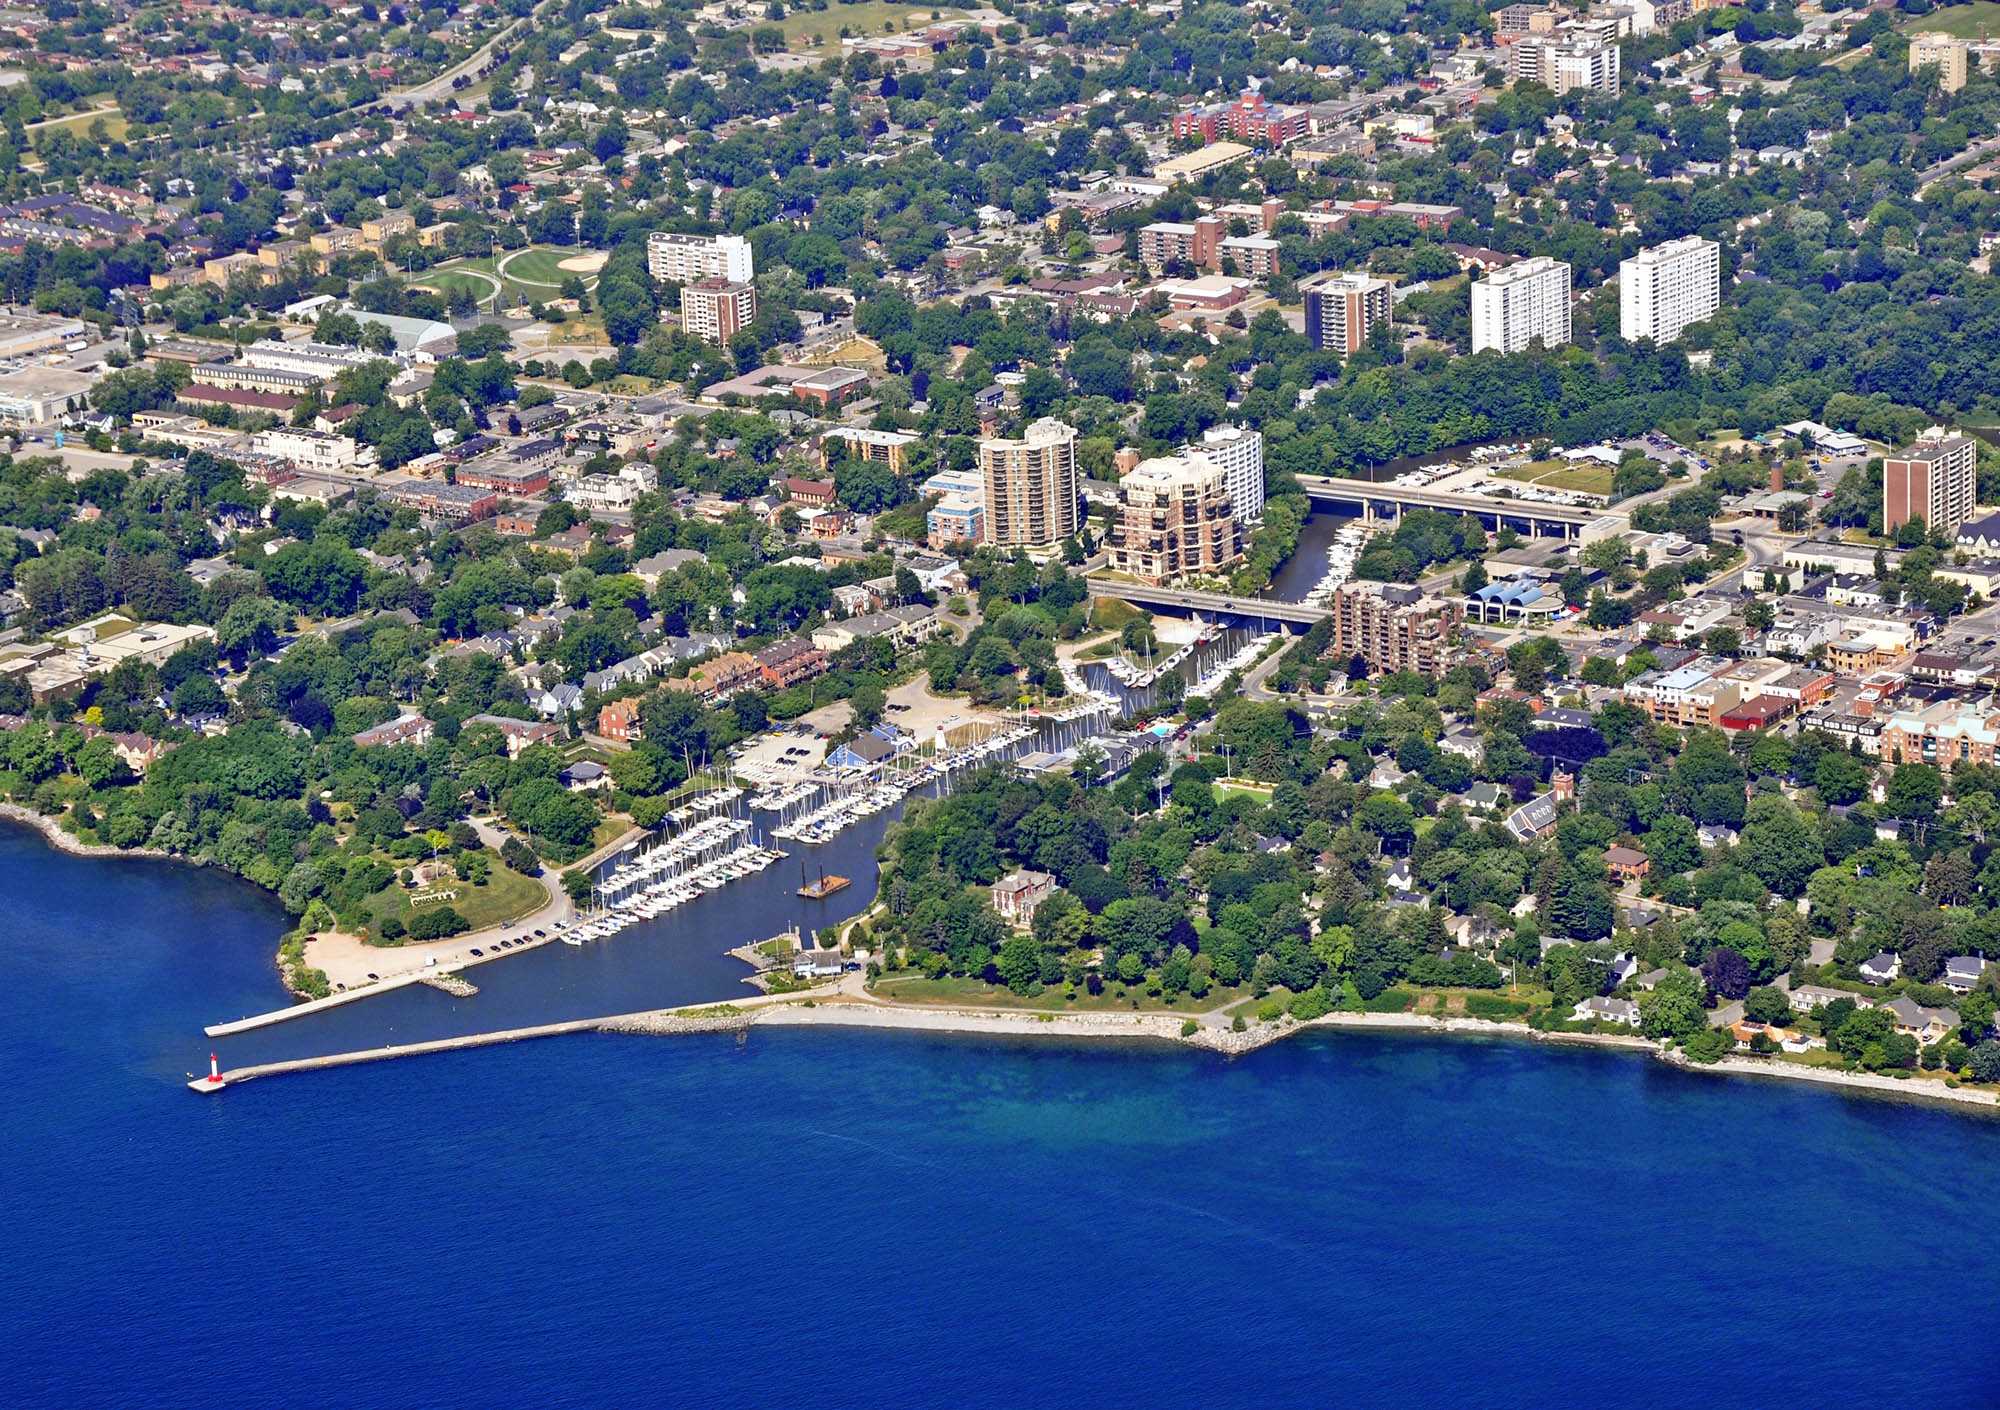 aerial view of the harbor in Oakville Ontario, Canada